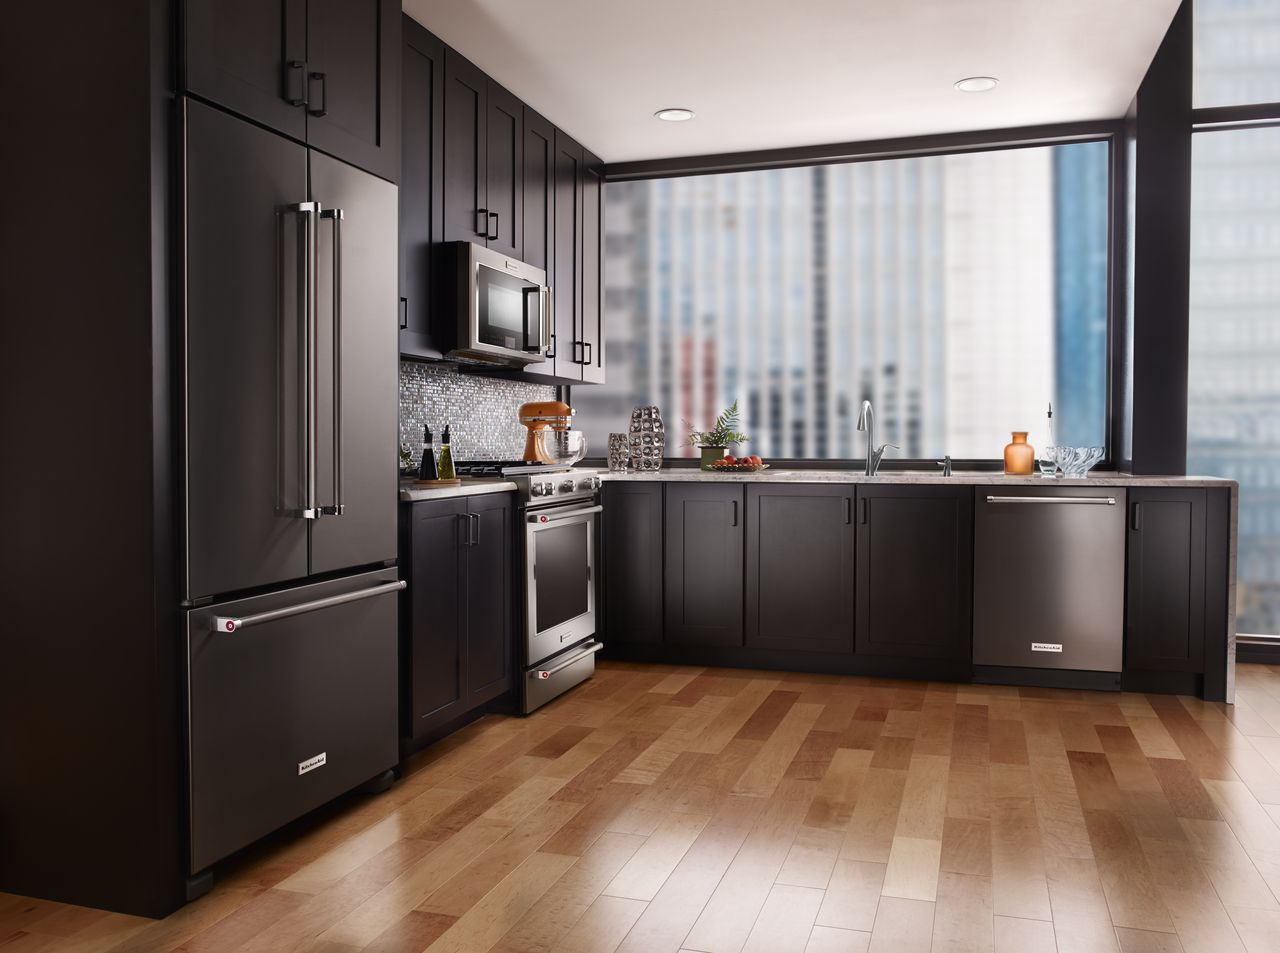 Best Kitchen Gallery: What's The Next Big Trend For Kitchen Appliances After Stainless of Traditional Kitchen Appliances on rachelxblog.com